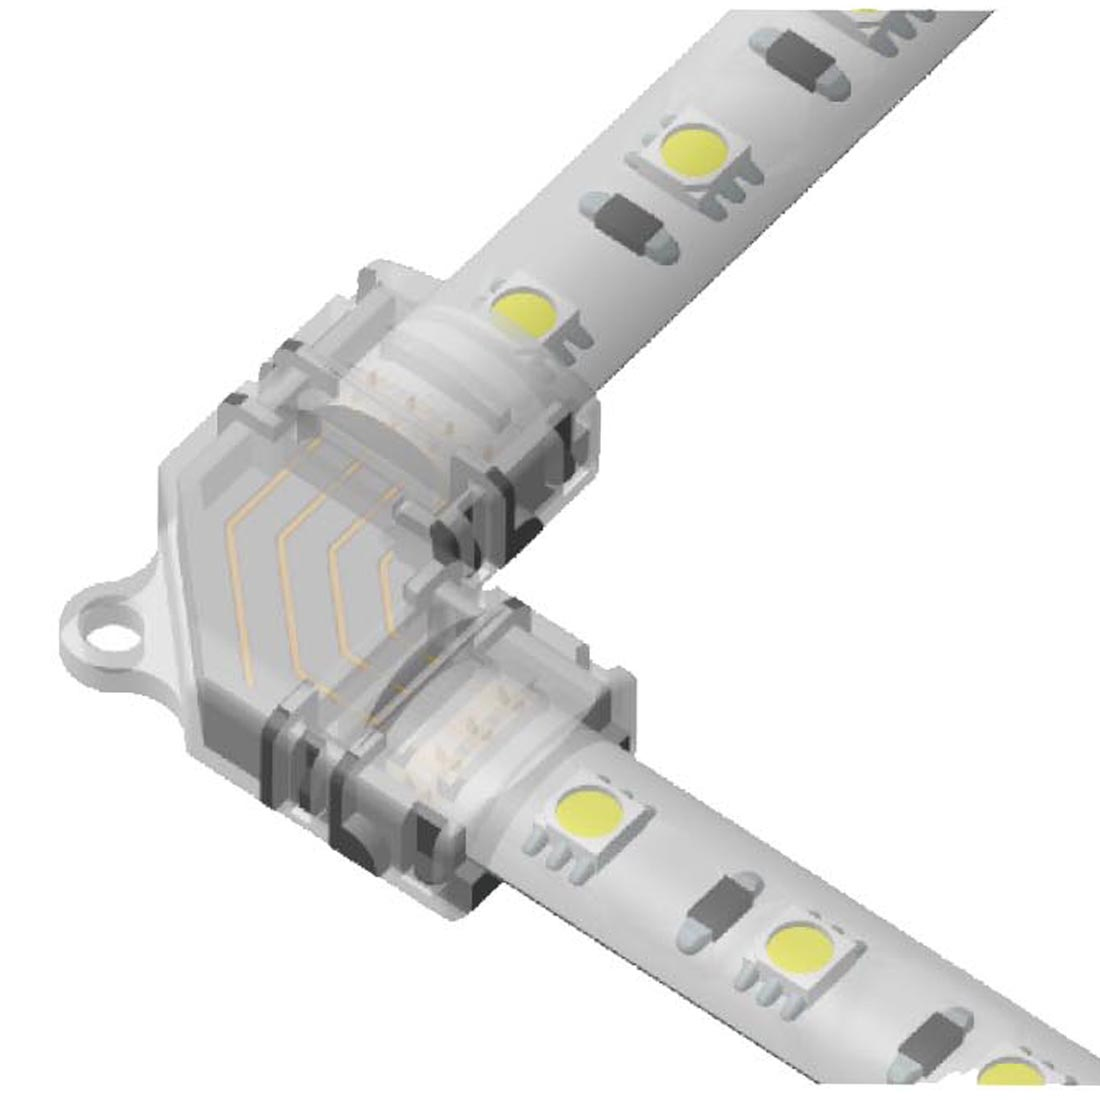 4 Pin RGB Led Light Connectors 10mm L Shape Right Angle Corner Connector Solderless Adapter Terminal for 5050 Multicolor LED Strip Lights